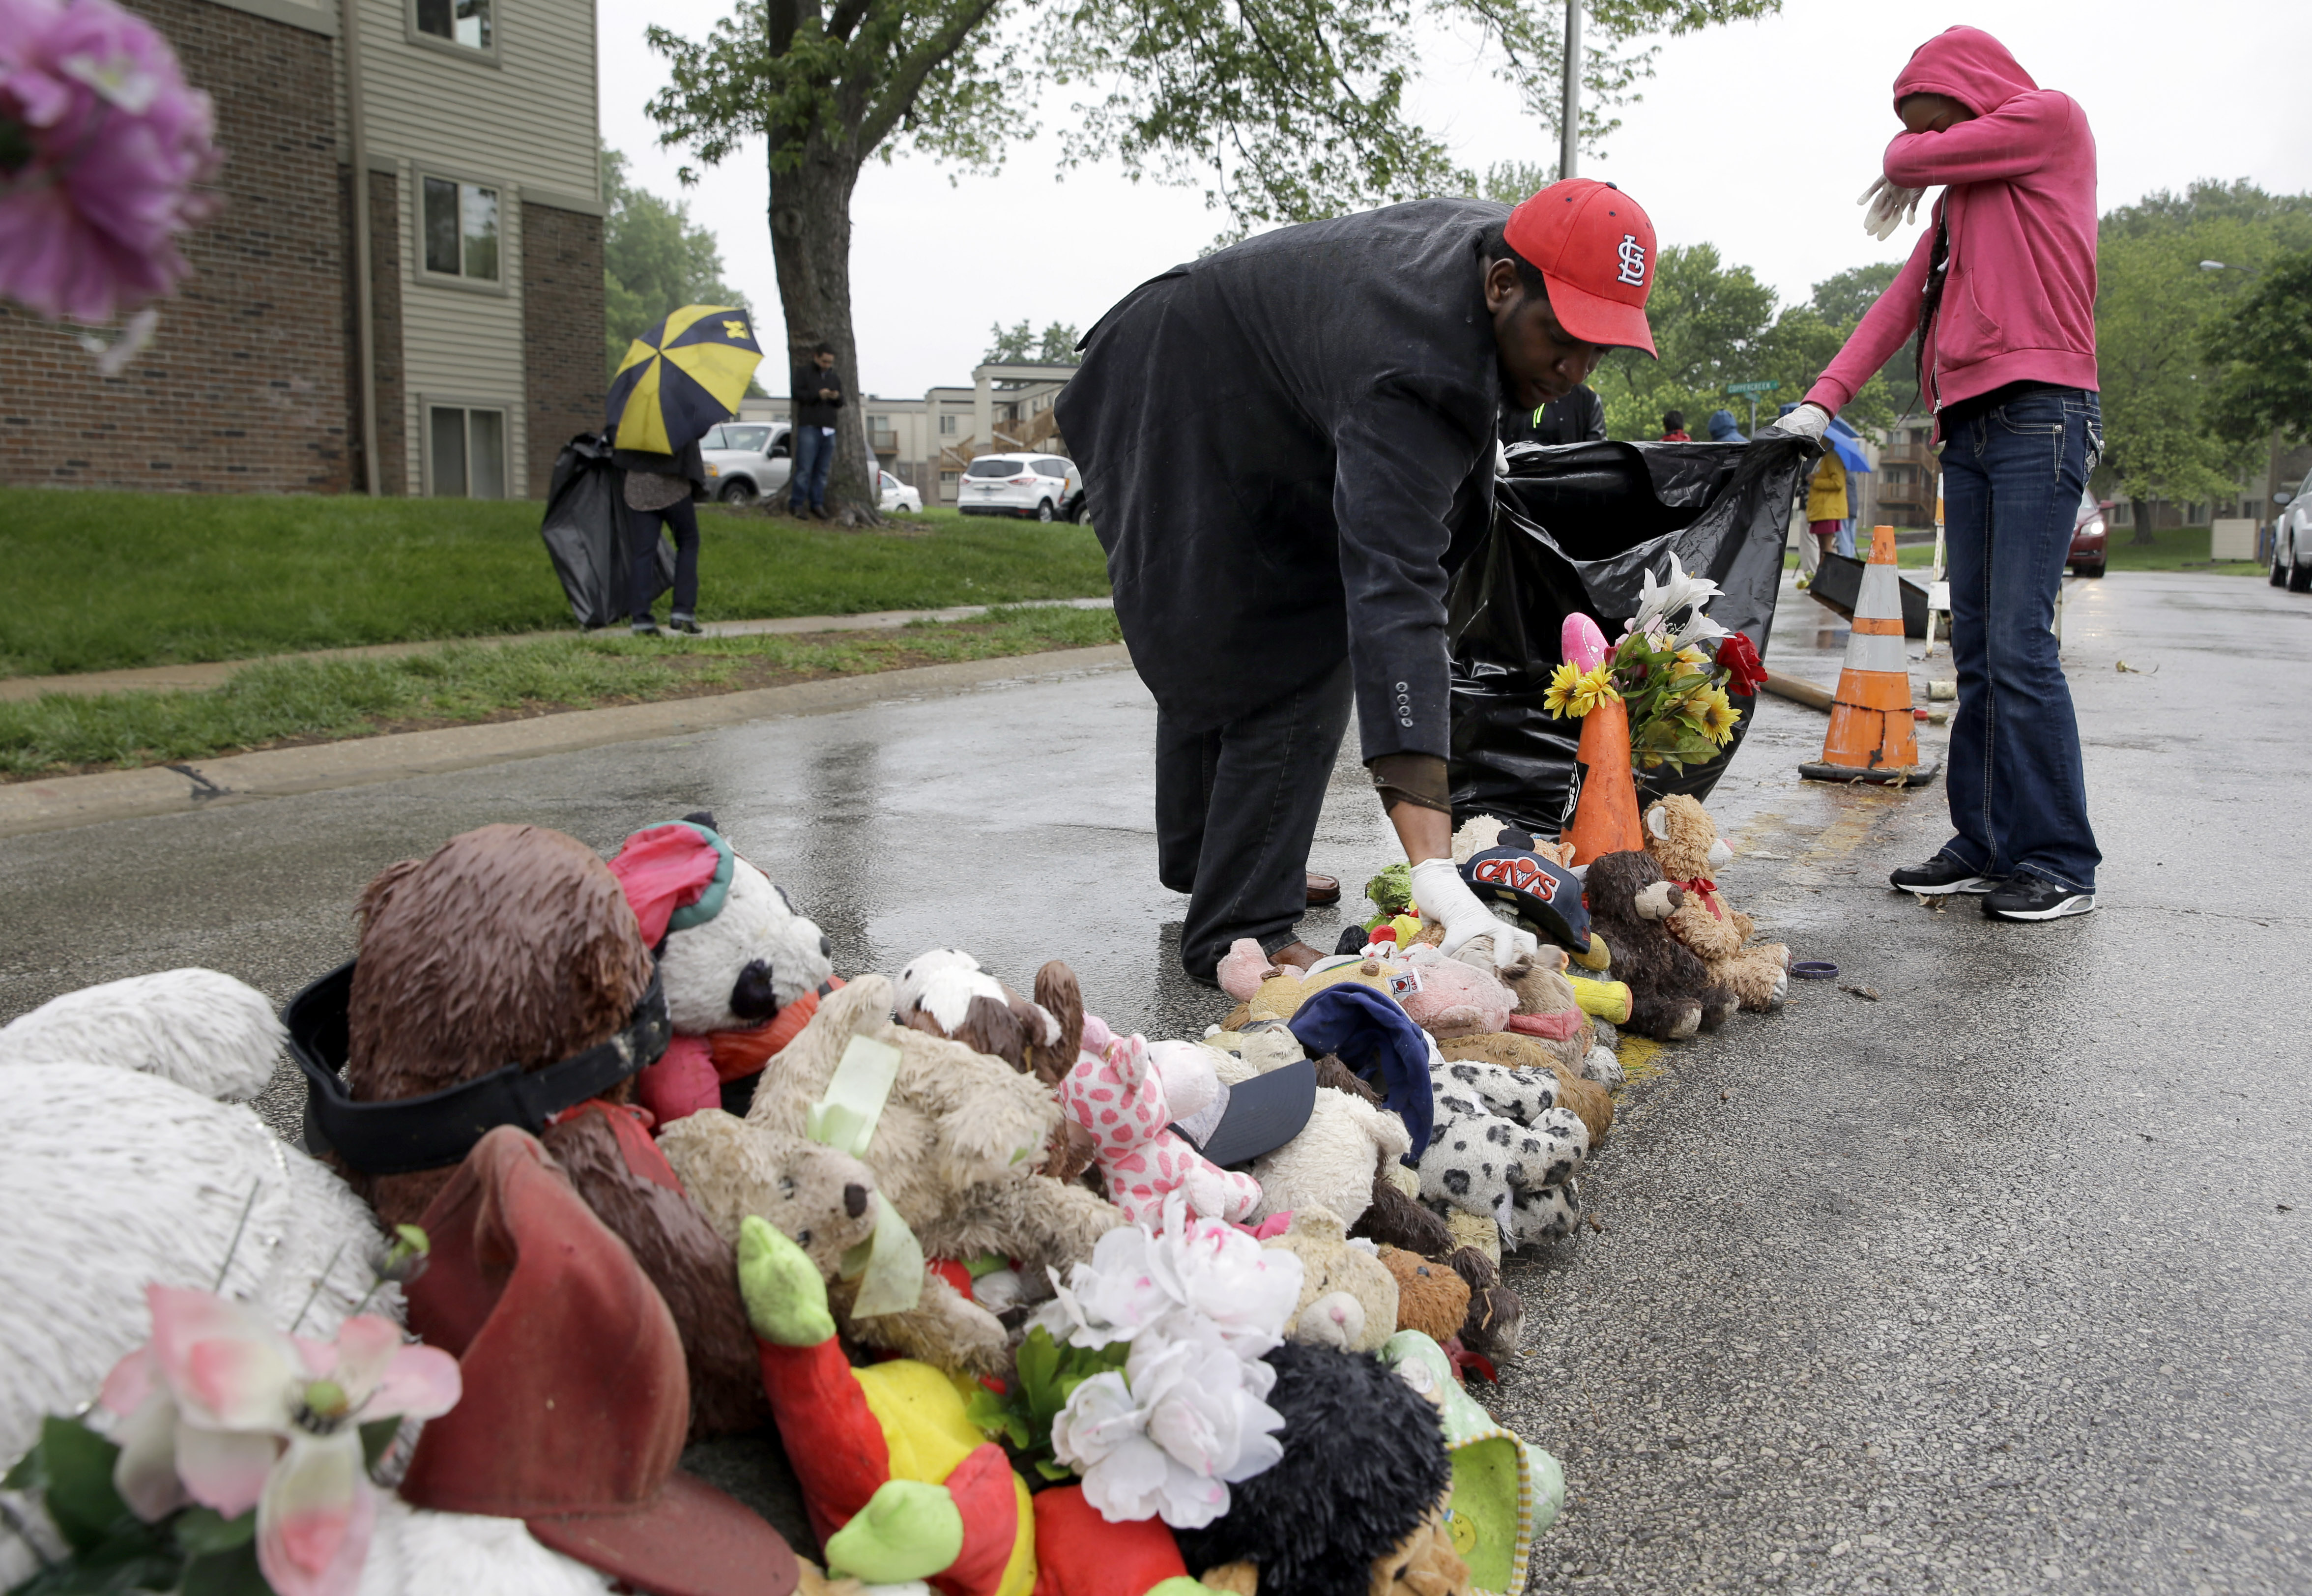 Volunteers Cheyenne Green, right, and Derrick Robinson help remove items left at a makeshift memorial to Michael Brown Wednesday, May 20, 2015, in Ferguson, Mo.